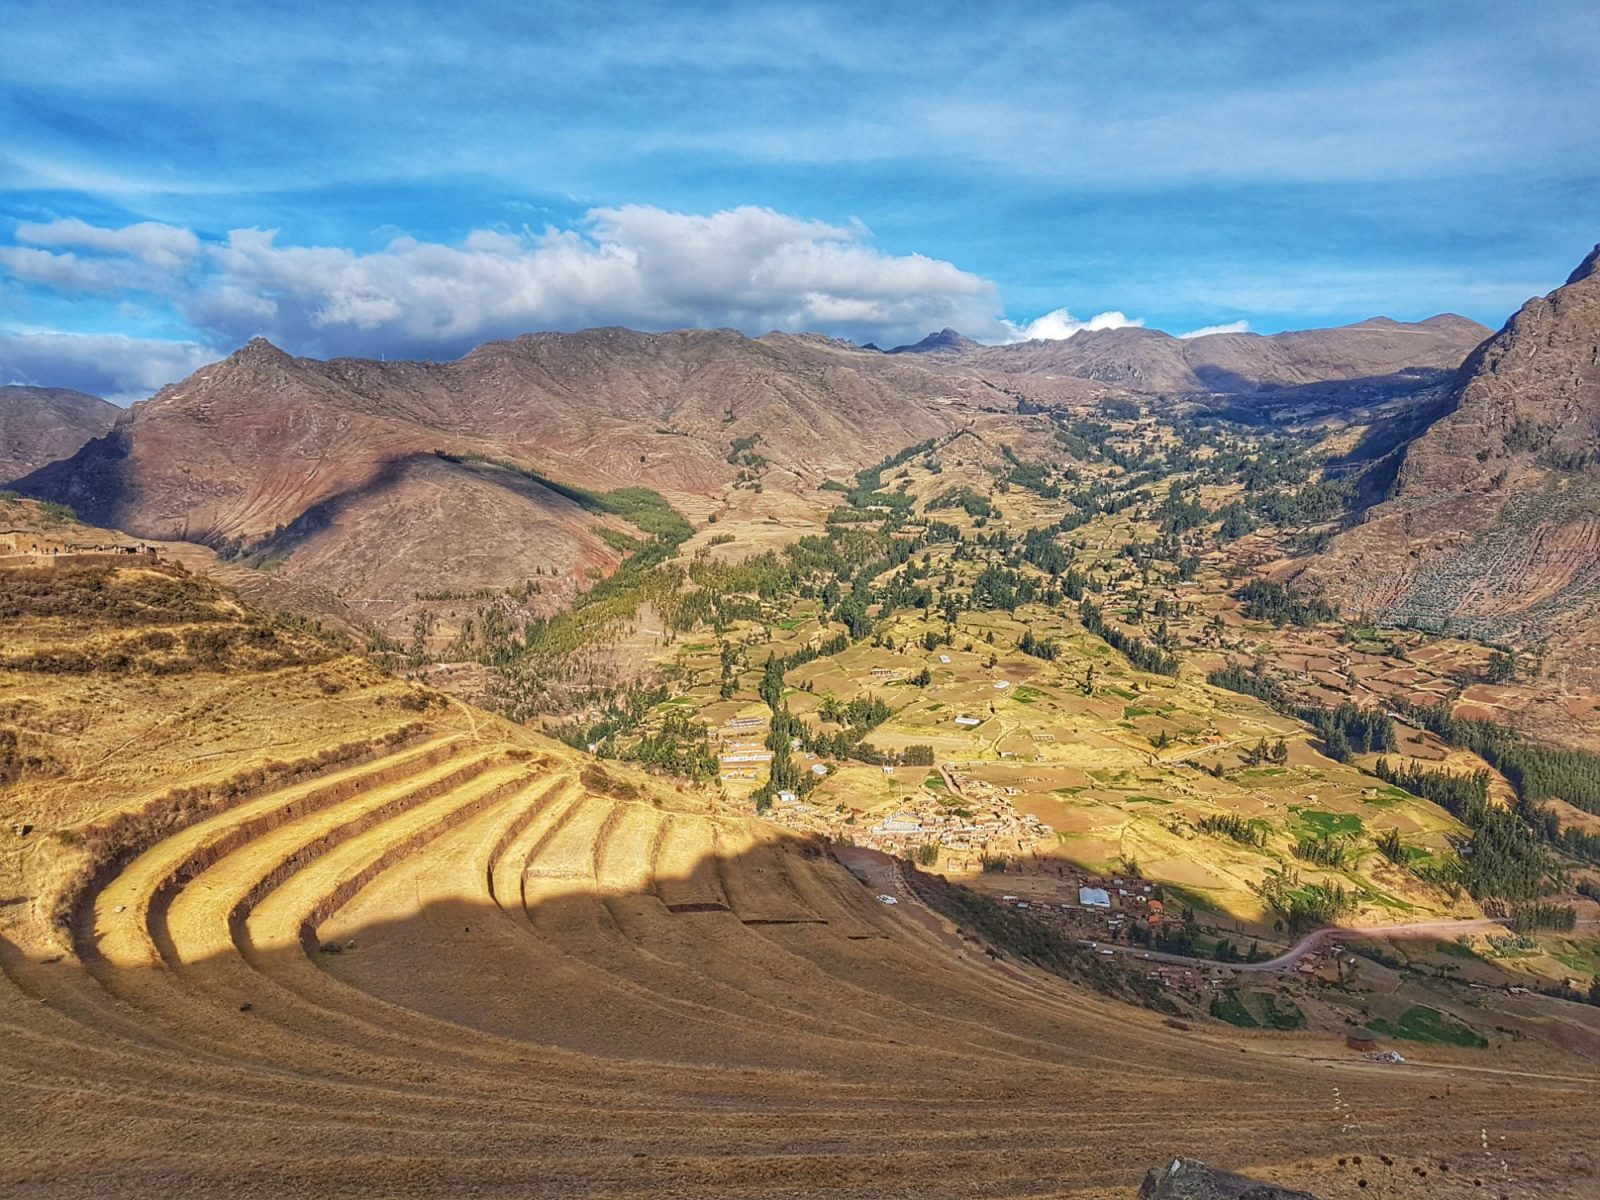 """<img src=""""images/"""" width=""""800"""" height=""""600"""" alt=""""sacred valley - 20171010 161813 011329374825 - Peru: Town Hopping The Sacred Valley"""">"""